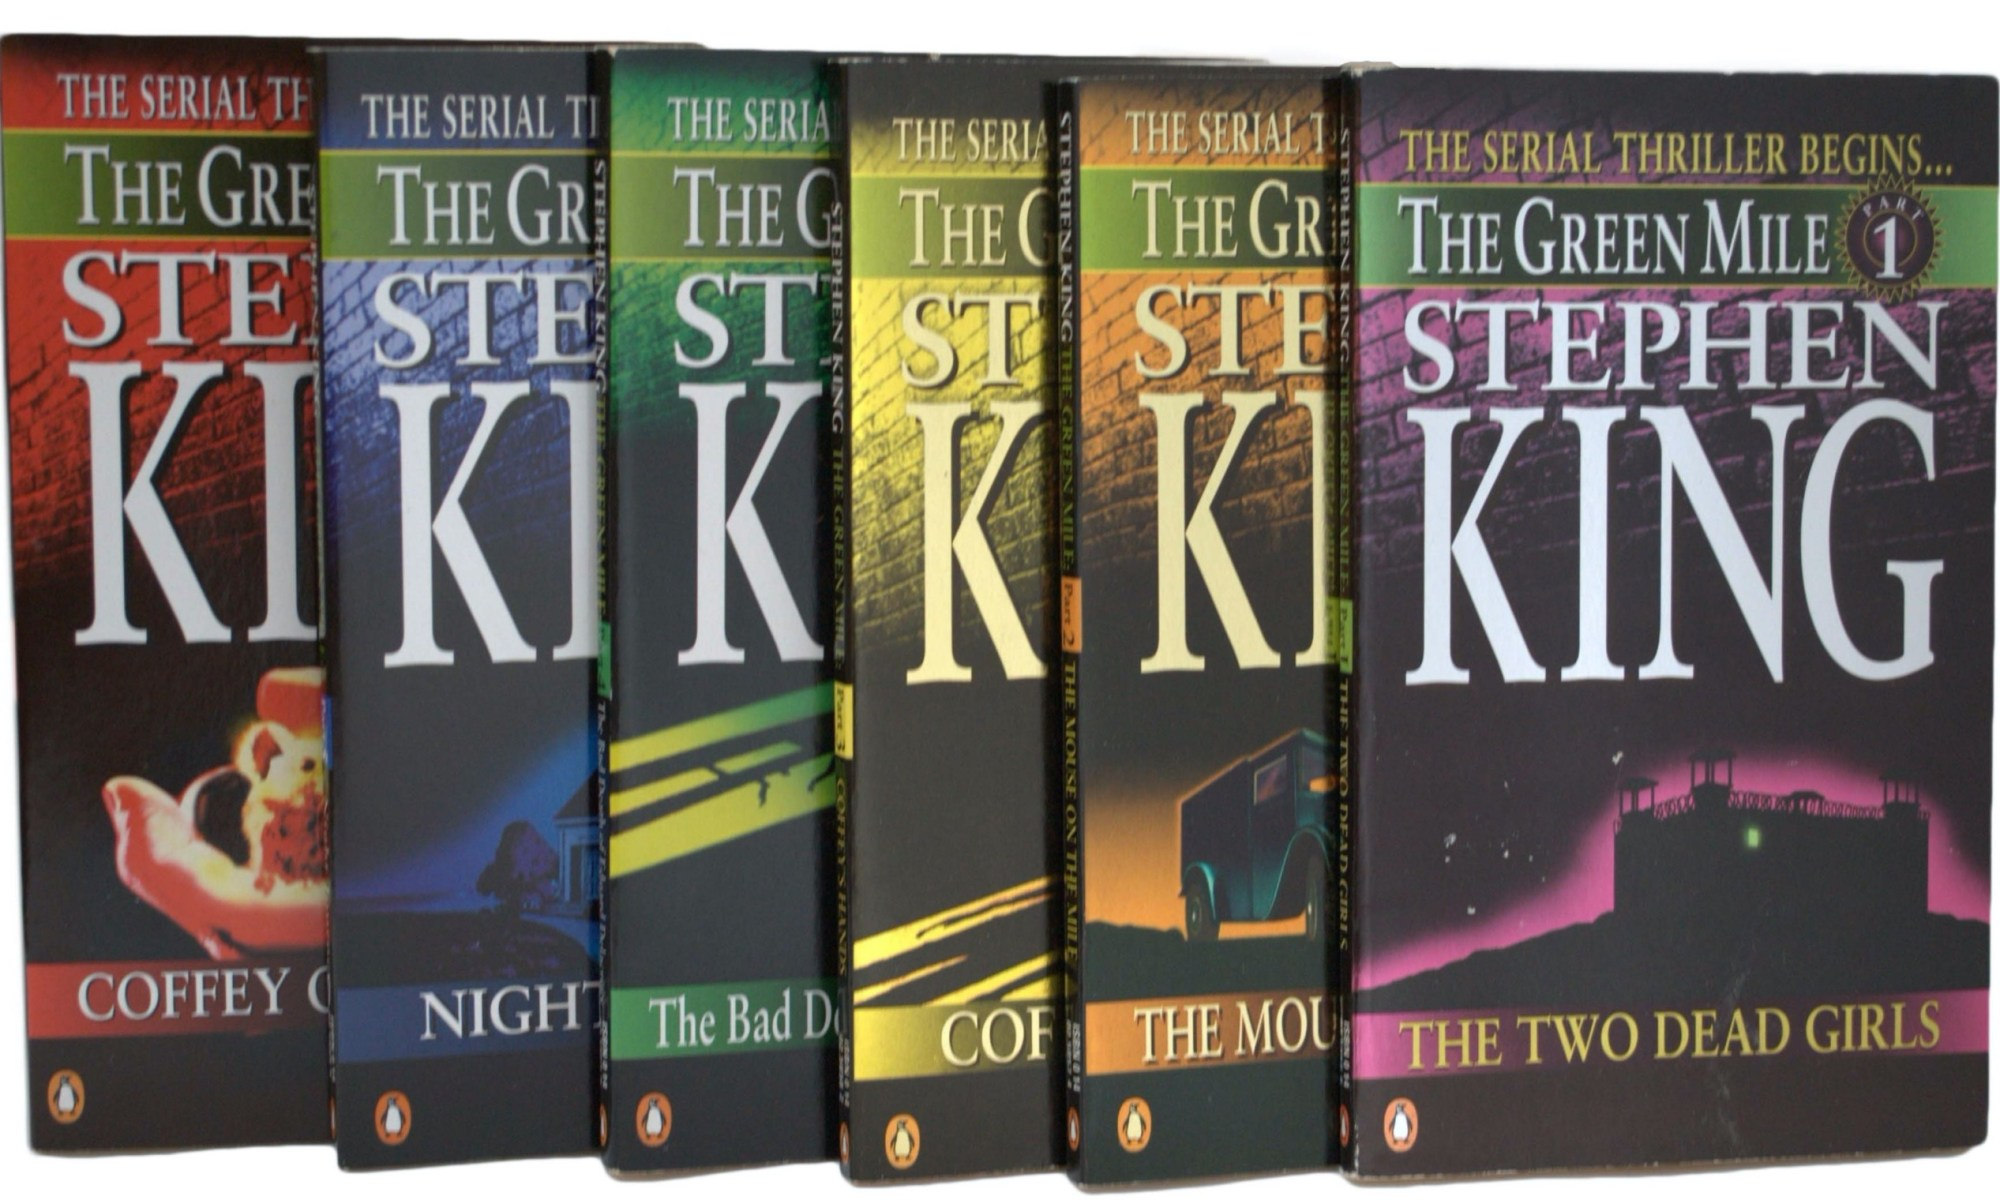 The Green Mile book series.